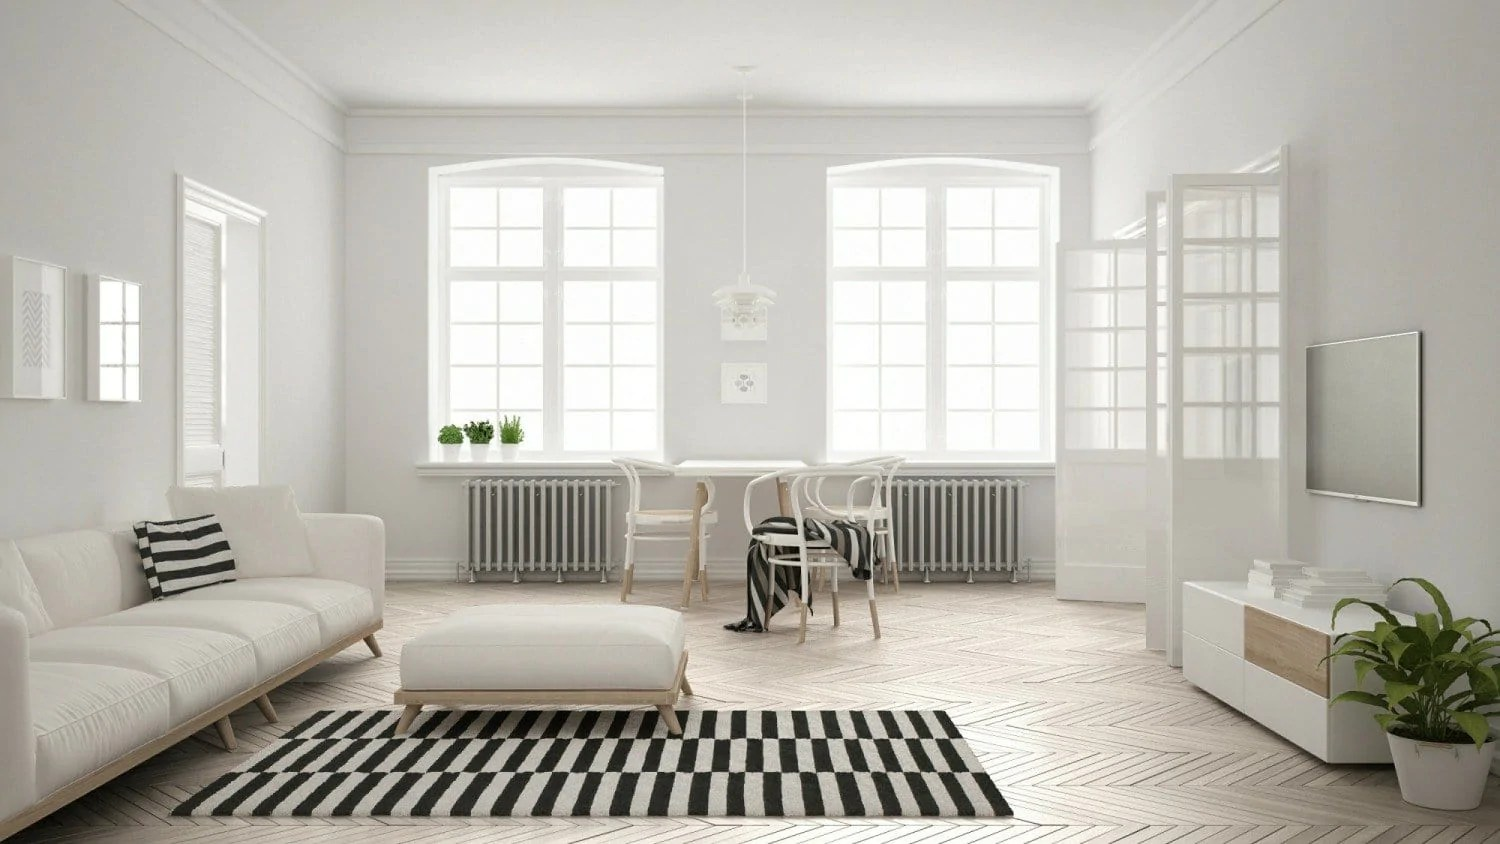 How to Get The Minimalist Look in Your Home | Unni & Evans on Minimalist Living Room Design  id=40253